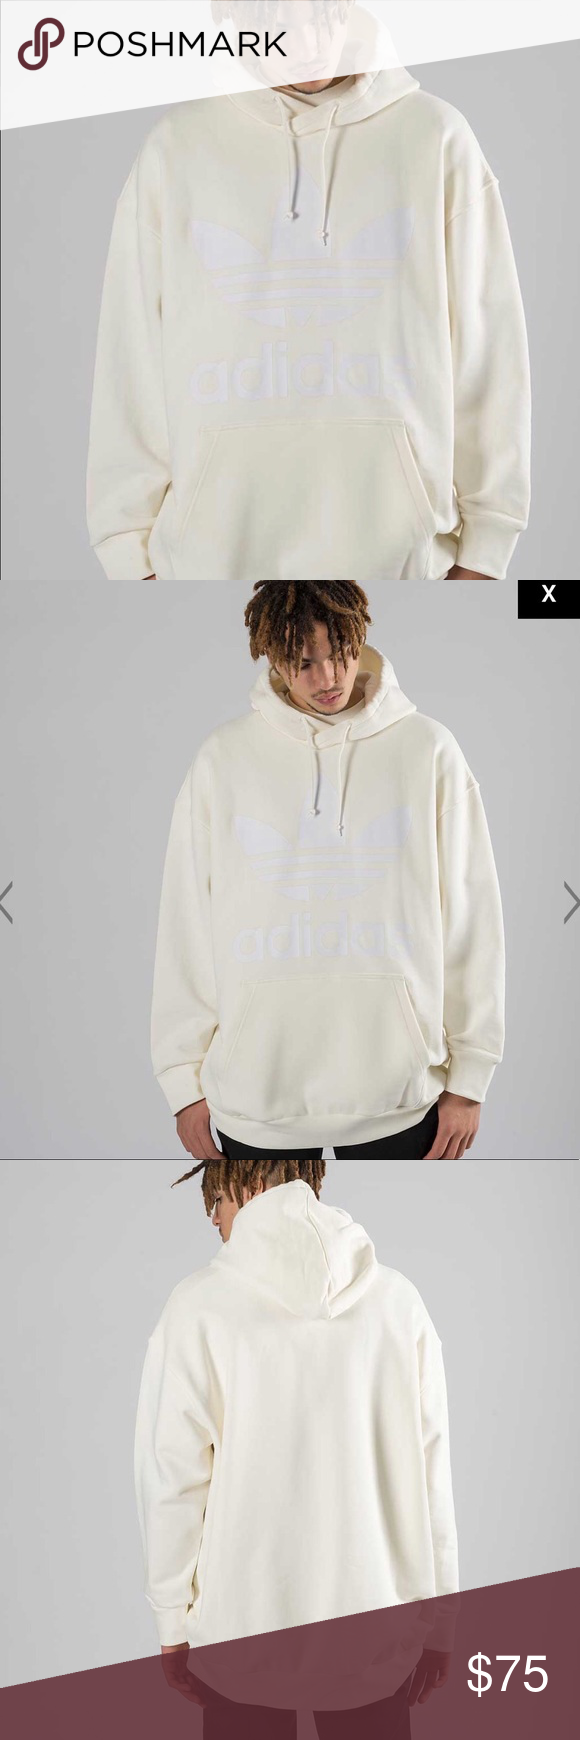 Oversized Adidas Adc Hoodie Cream Colored Sweater Clothes Design Fashion [ 1740 x 580 Pixel ]